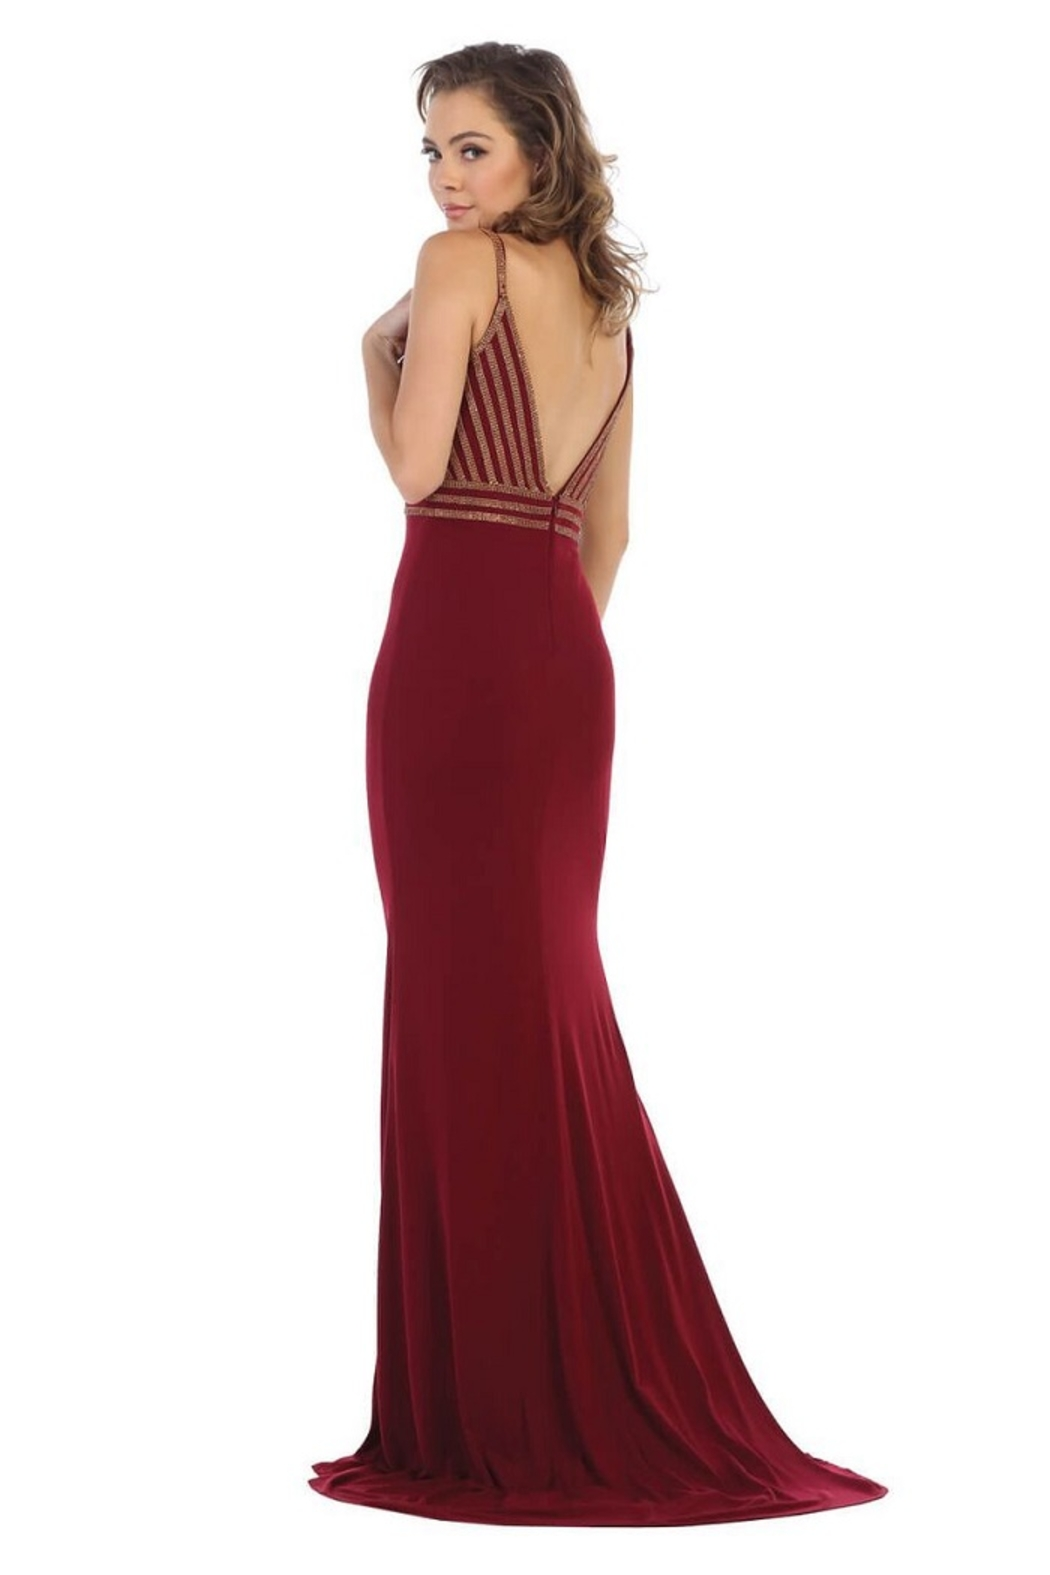 May Queen  Burgundy Sweetheart Beaded Formal Long Dress - Front Full Image